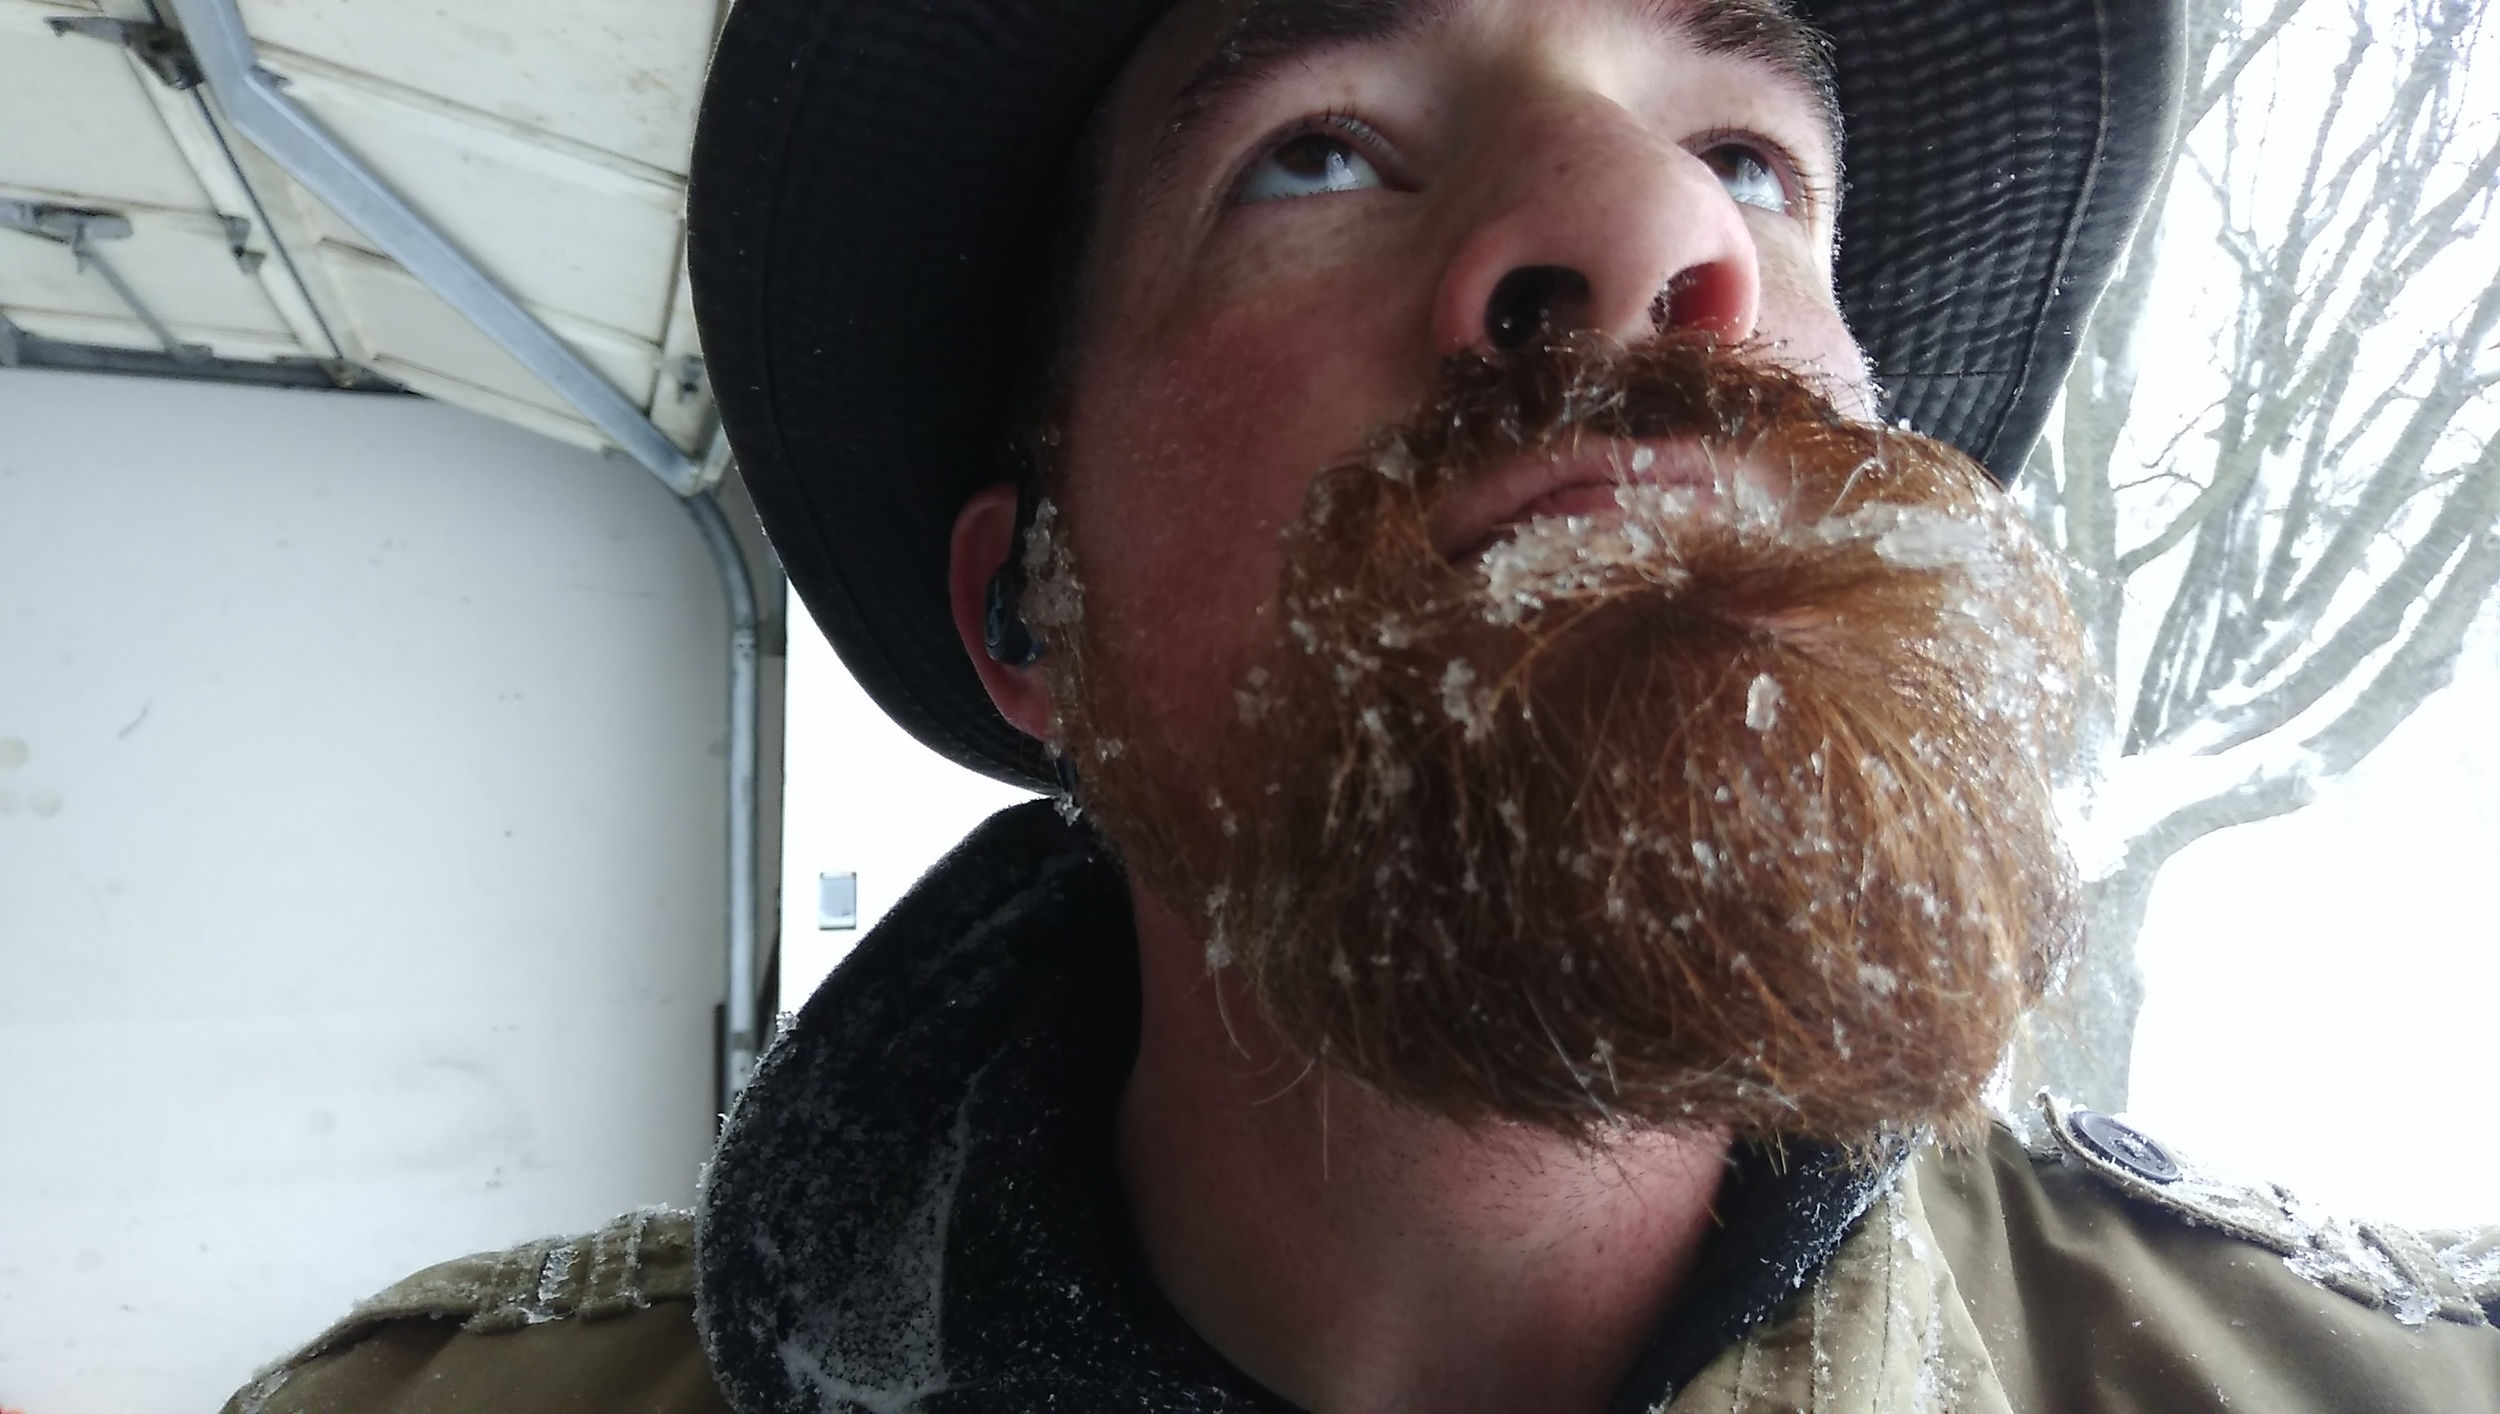 Midday Saturday. Blizzards make for a snowy beard.